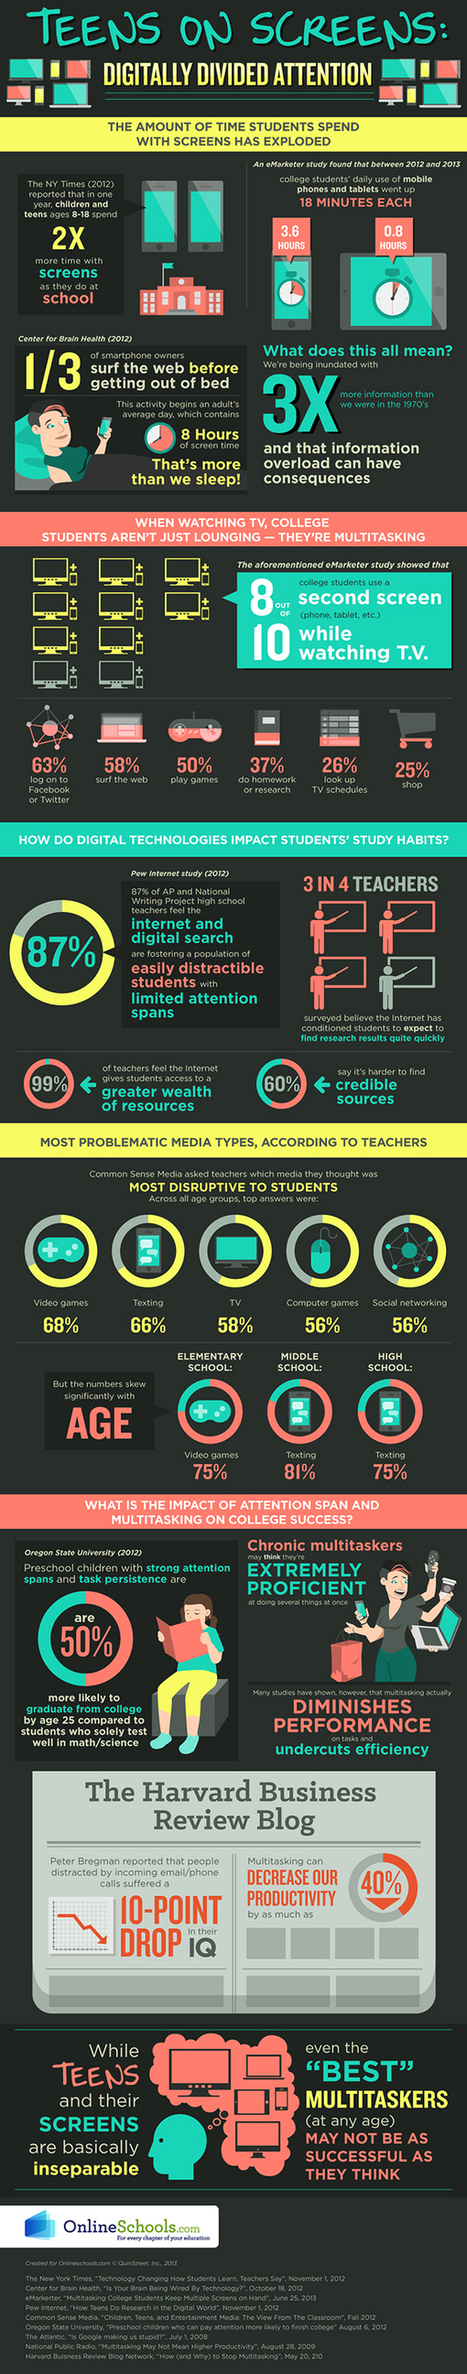 Students on Screens: Multitasking and Device Use Among Teens | MarketingHits | Scoop.it